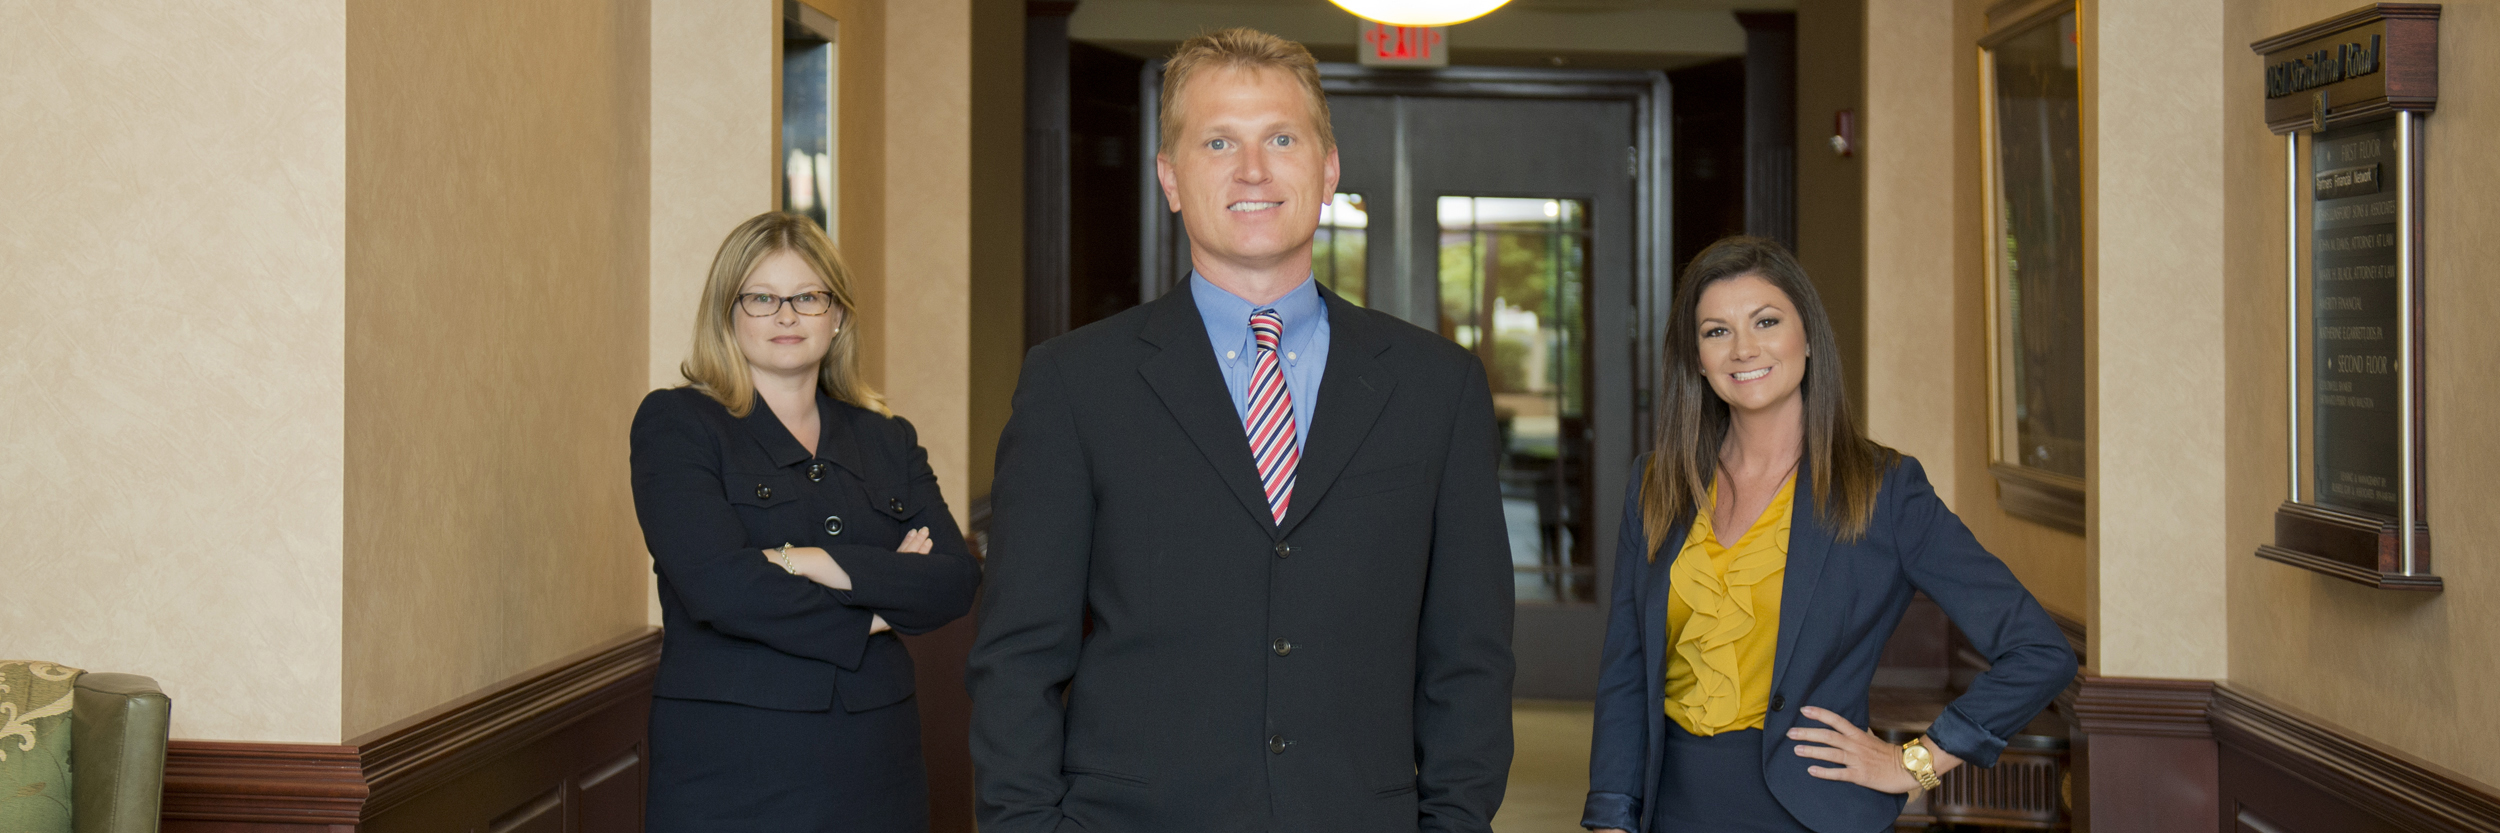 Friendly team at Doyle Law Group Raleigh